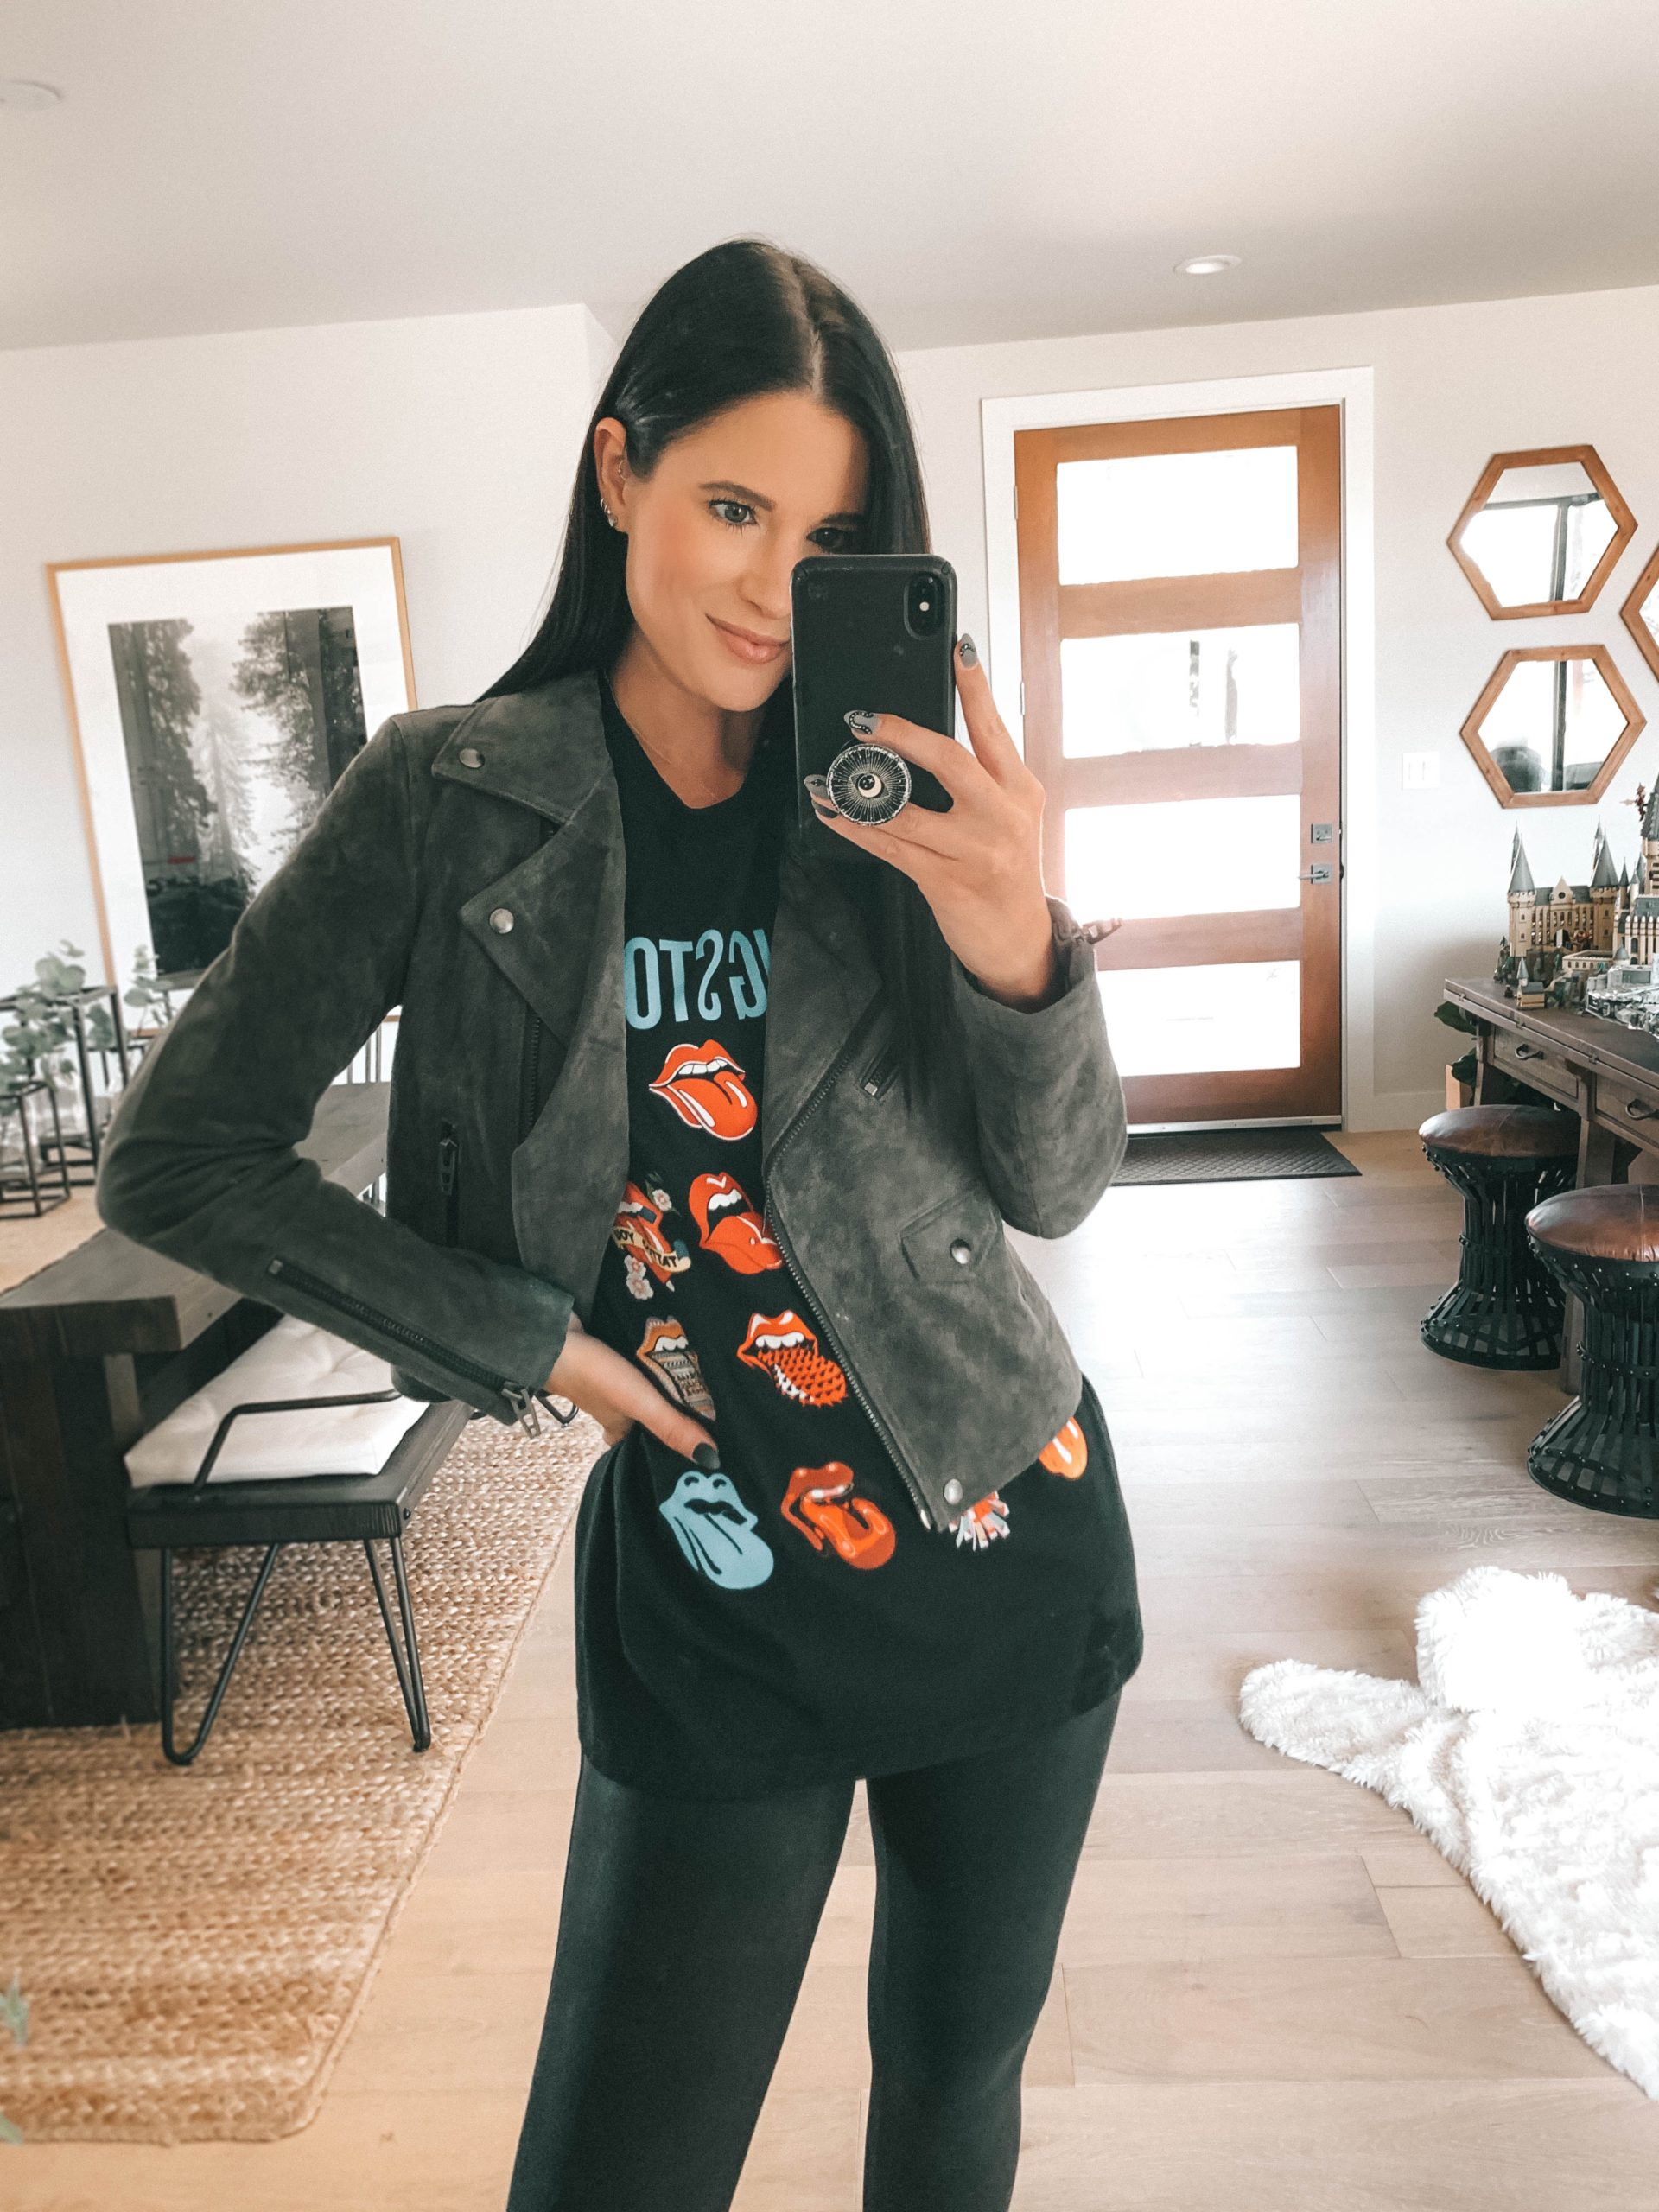 Nordstrom Anniversary Sale by popular Austin fashion blog, Dressed to Kill: image of a woman wearing a Nordstrom Vital Signs Suede Moto Jacket BLANKNYC, Rolling Stones t-shirt, and Nordstrom Faux Leather Leggings SPANX.